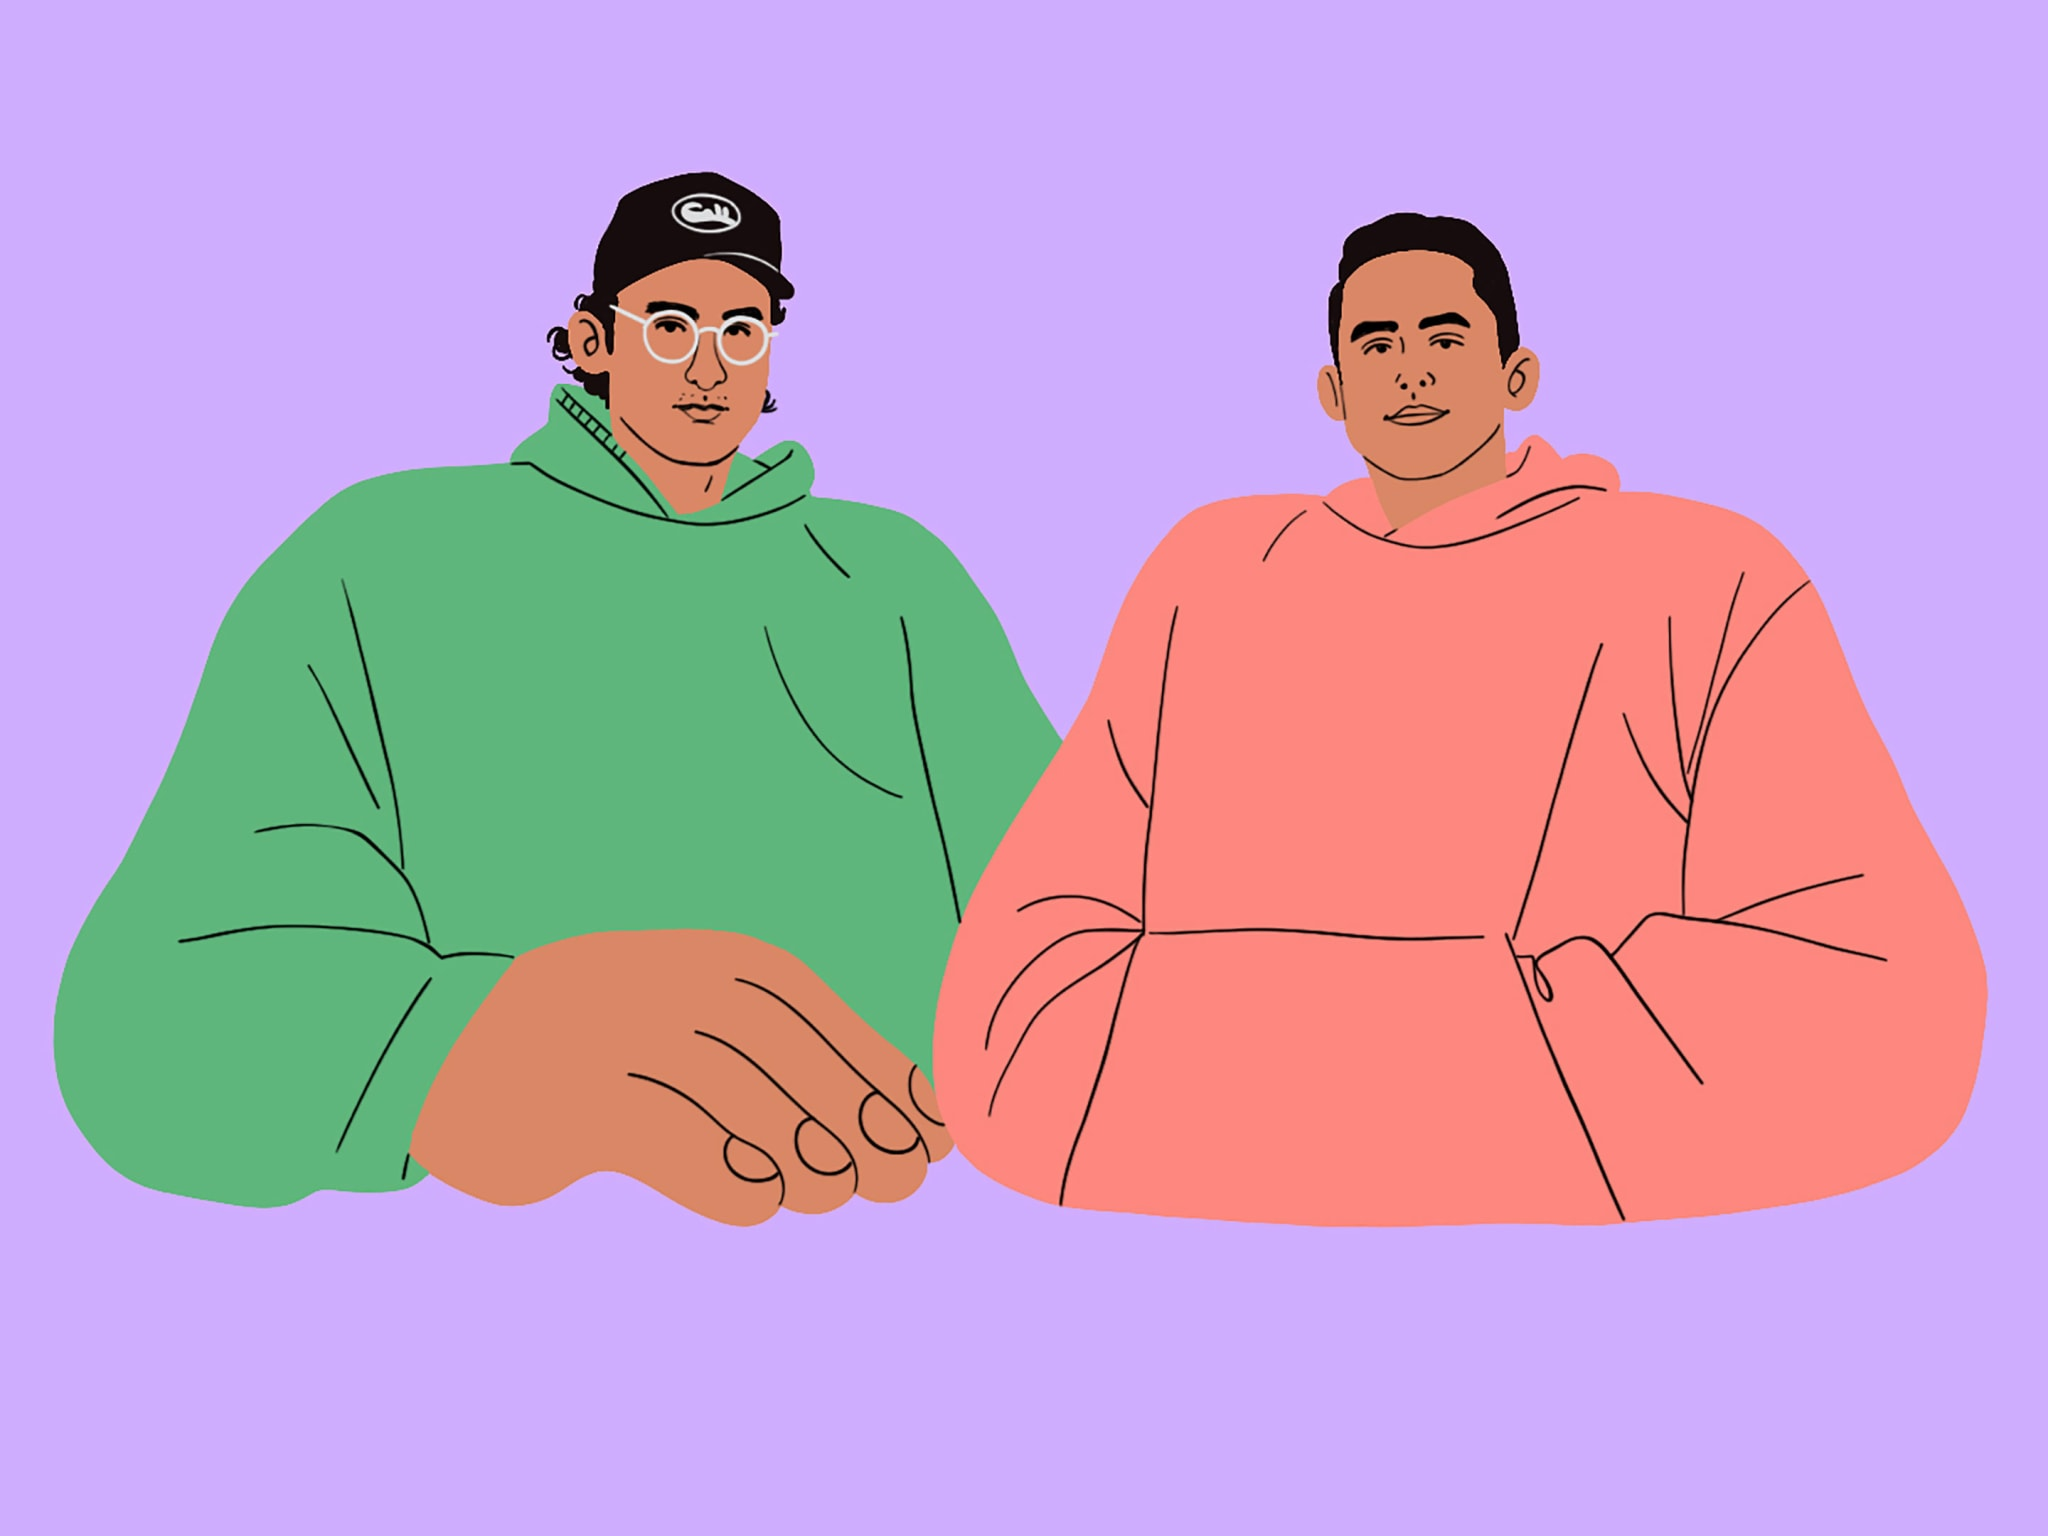 A colourful illustration of two men wearing hoodies.